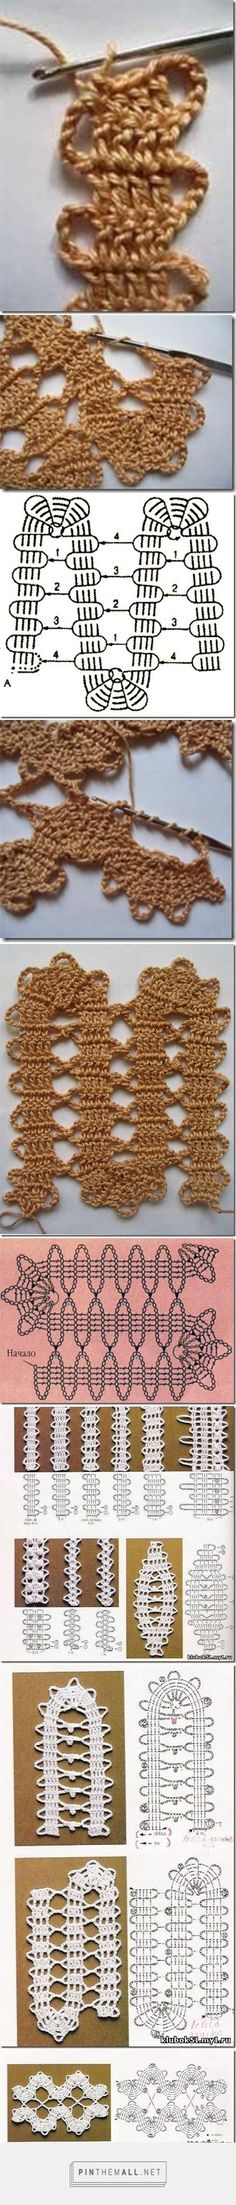 Crochet - bruges lace – HOW TO - loads of variations and photo tutorials [] # # #Irish #Crochet, # #Crochet #Lace, # #Crochet #Stitches, # #Crochet #Patterns, # #Used #Lace, # #Photo #Tutorial, # #Photos, # #Tutorials, # #Knitting